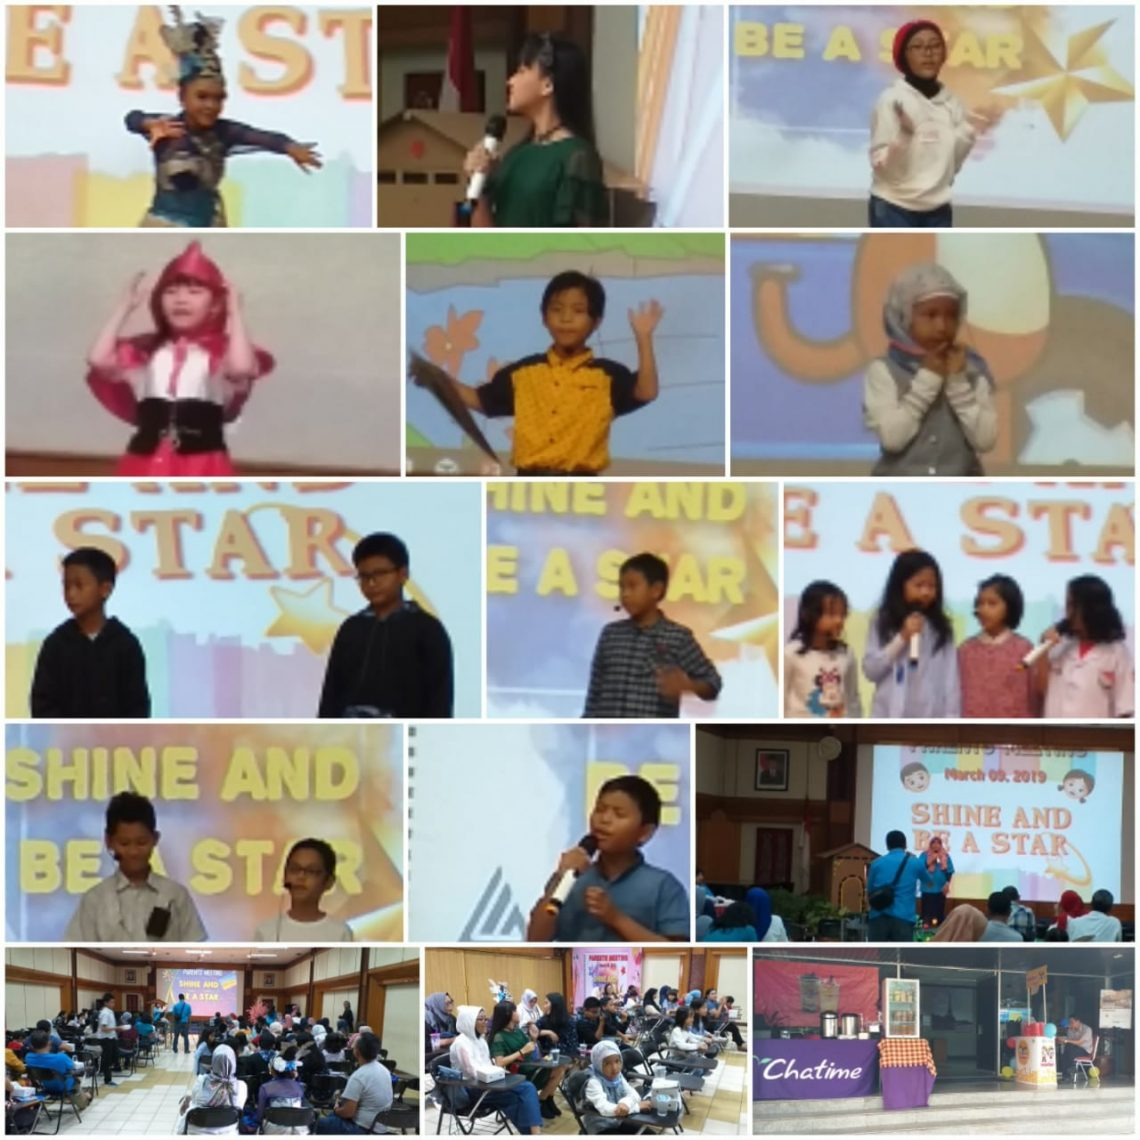 Parents' Meeting & Student Performance March 9, 2019